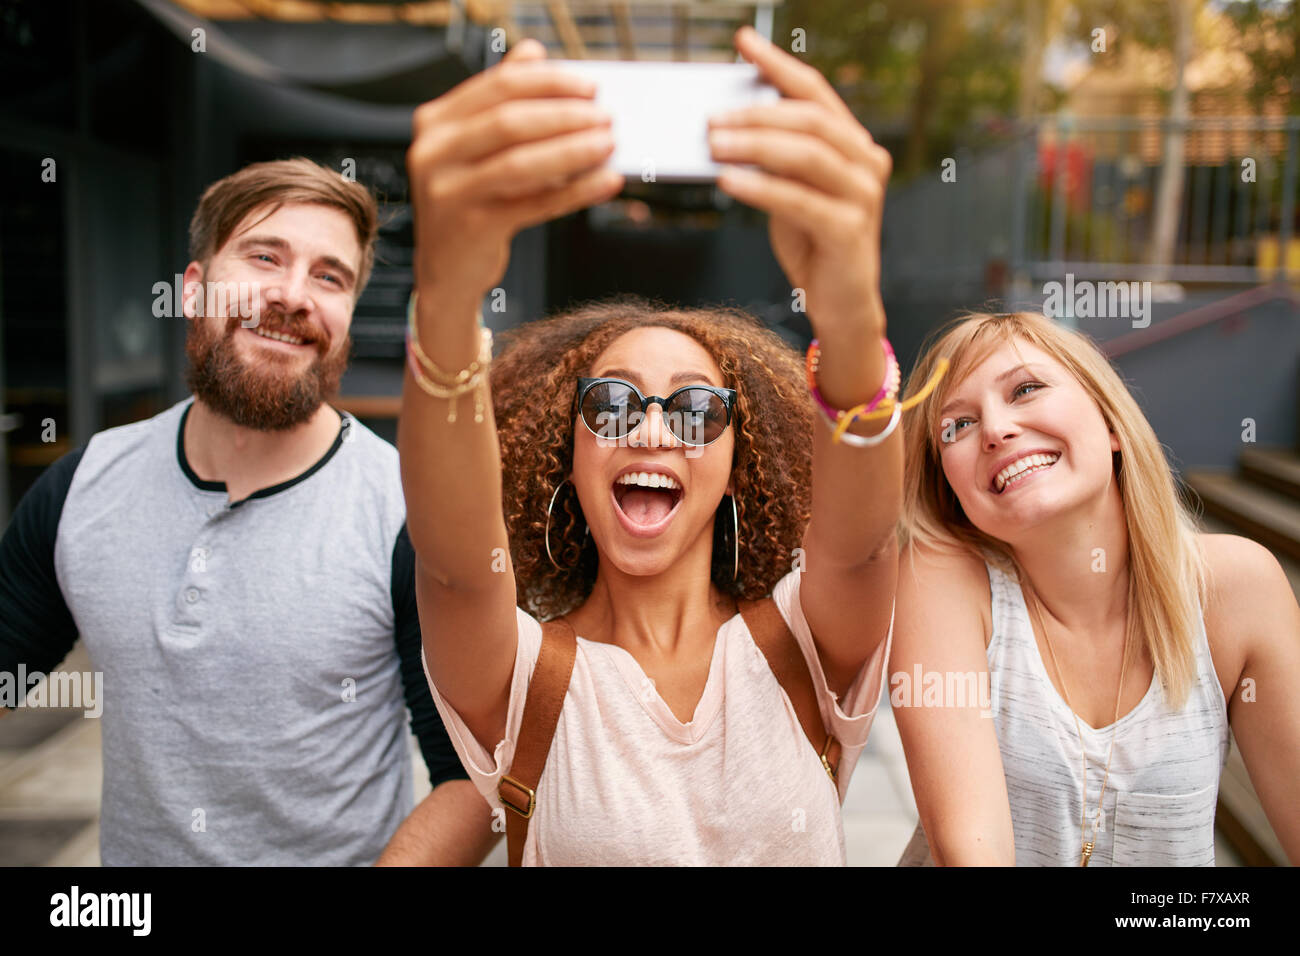 Group of smiling friends taking selfie with mobile phone. Multiracial man and women enjoying themselves outdoors - Stock Image